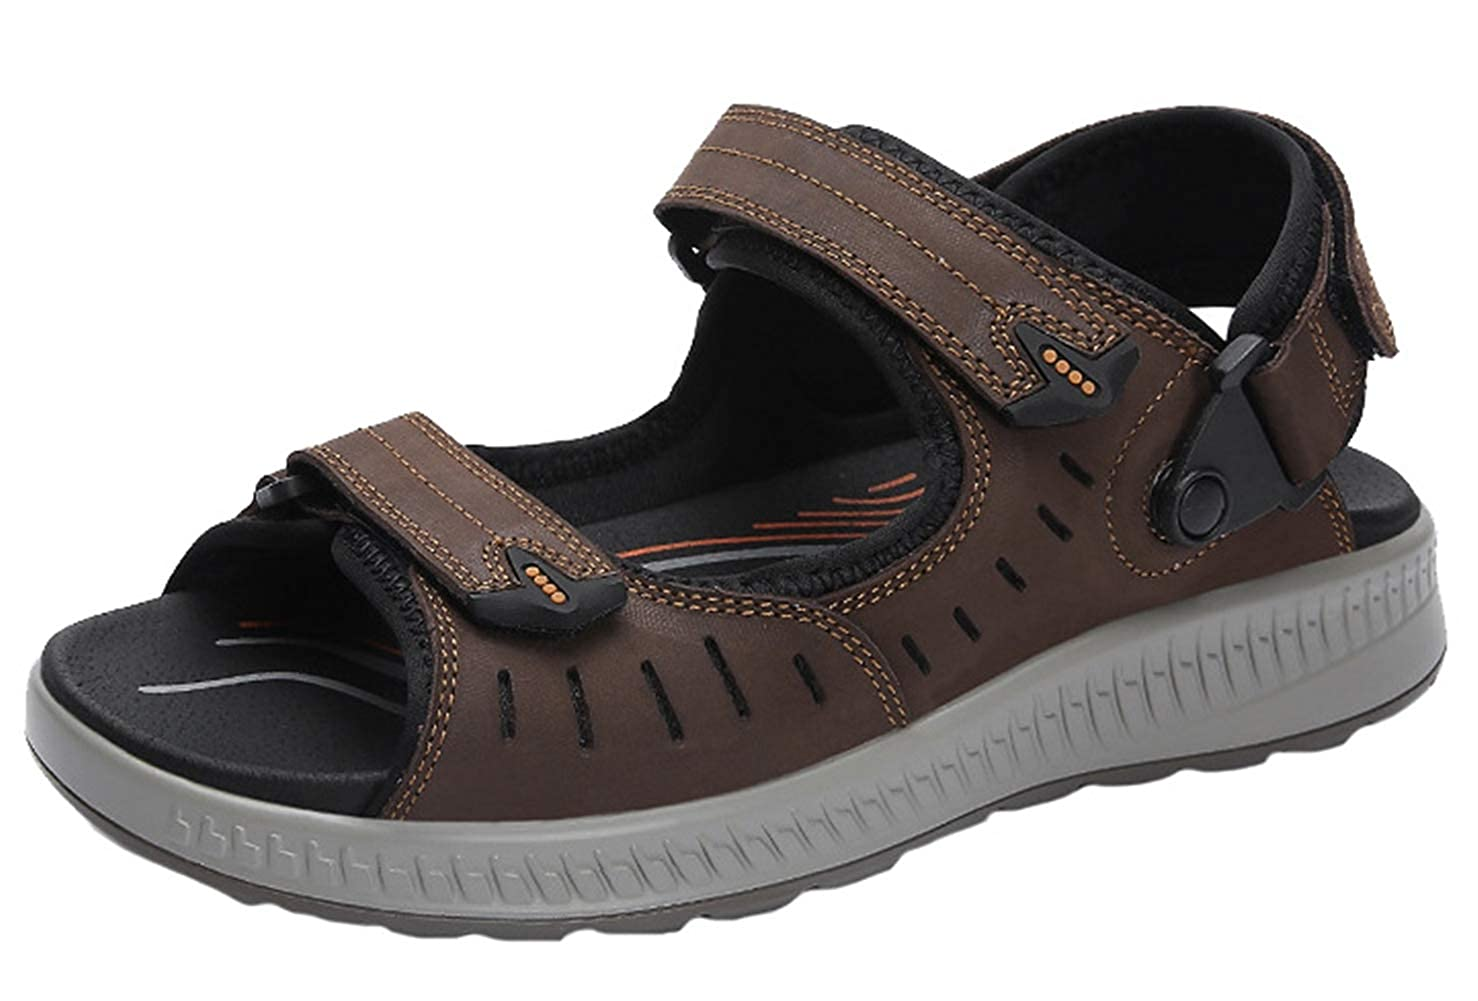 Liveinu Mens Outdoor Sports Sandals Leather Open-Toe Non-Slip Beach Sandal Shoes